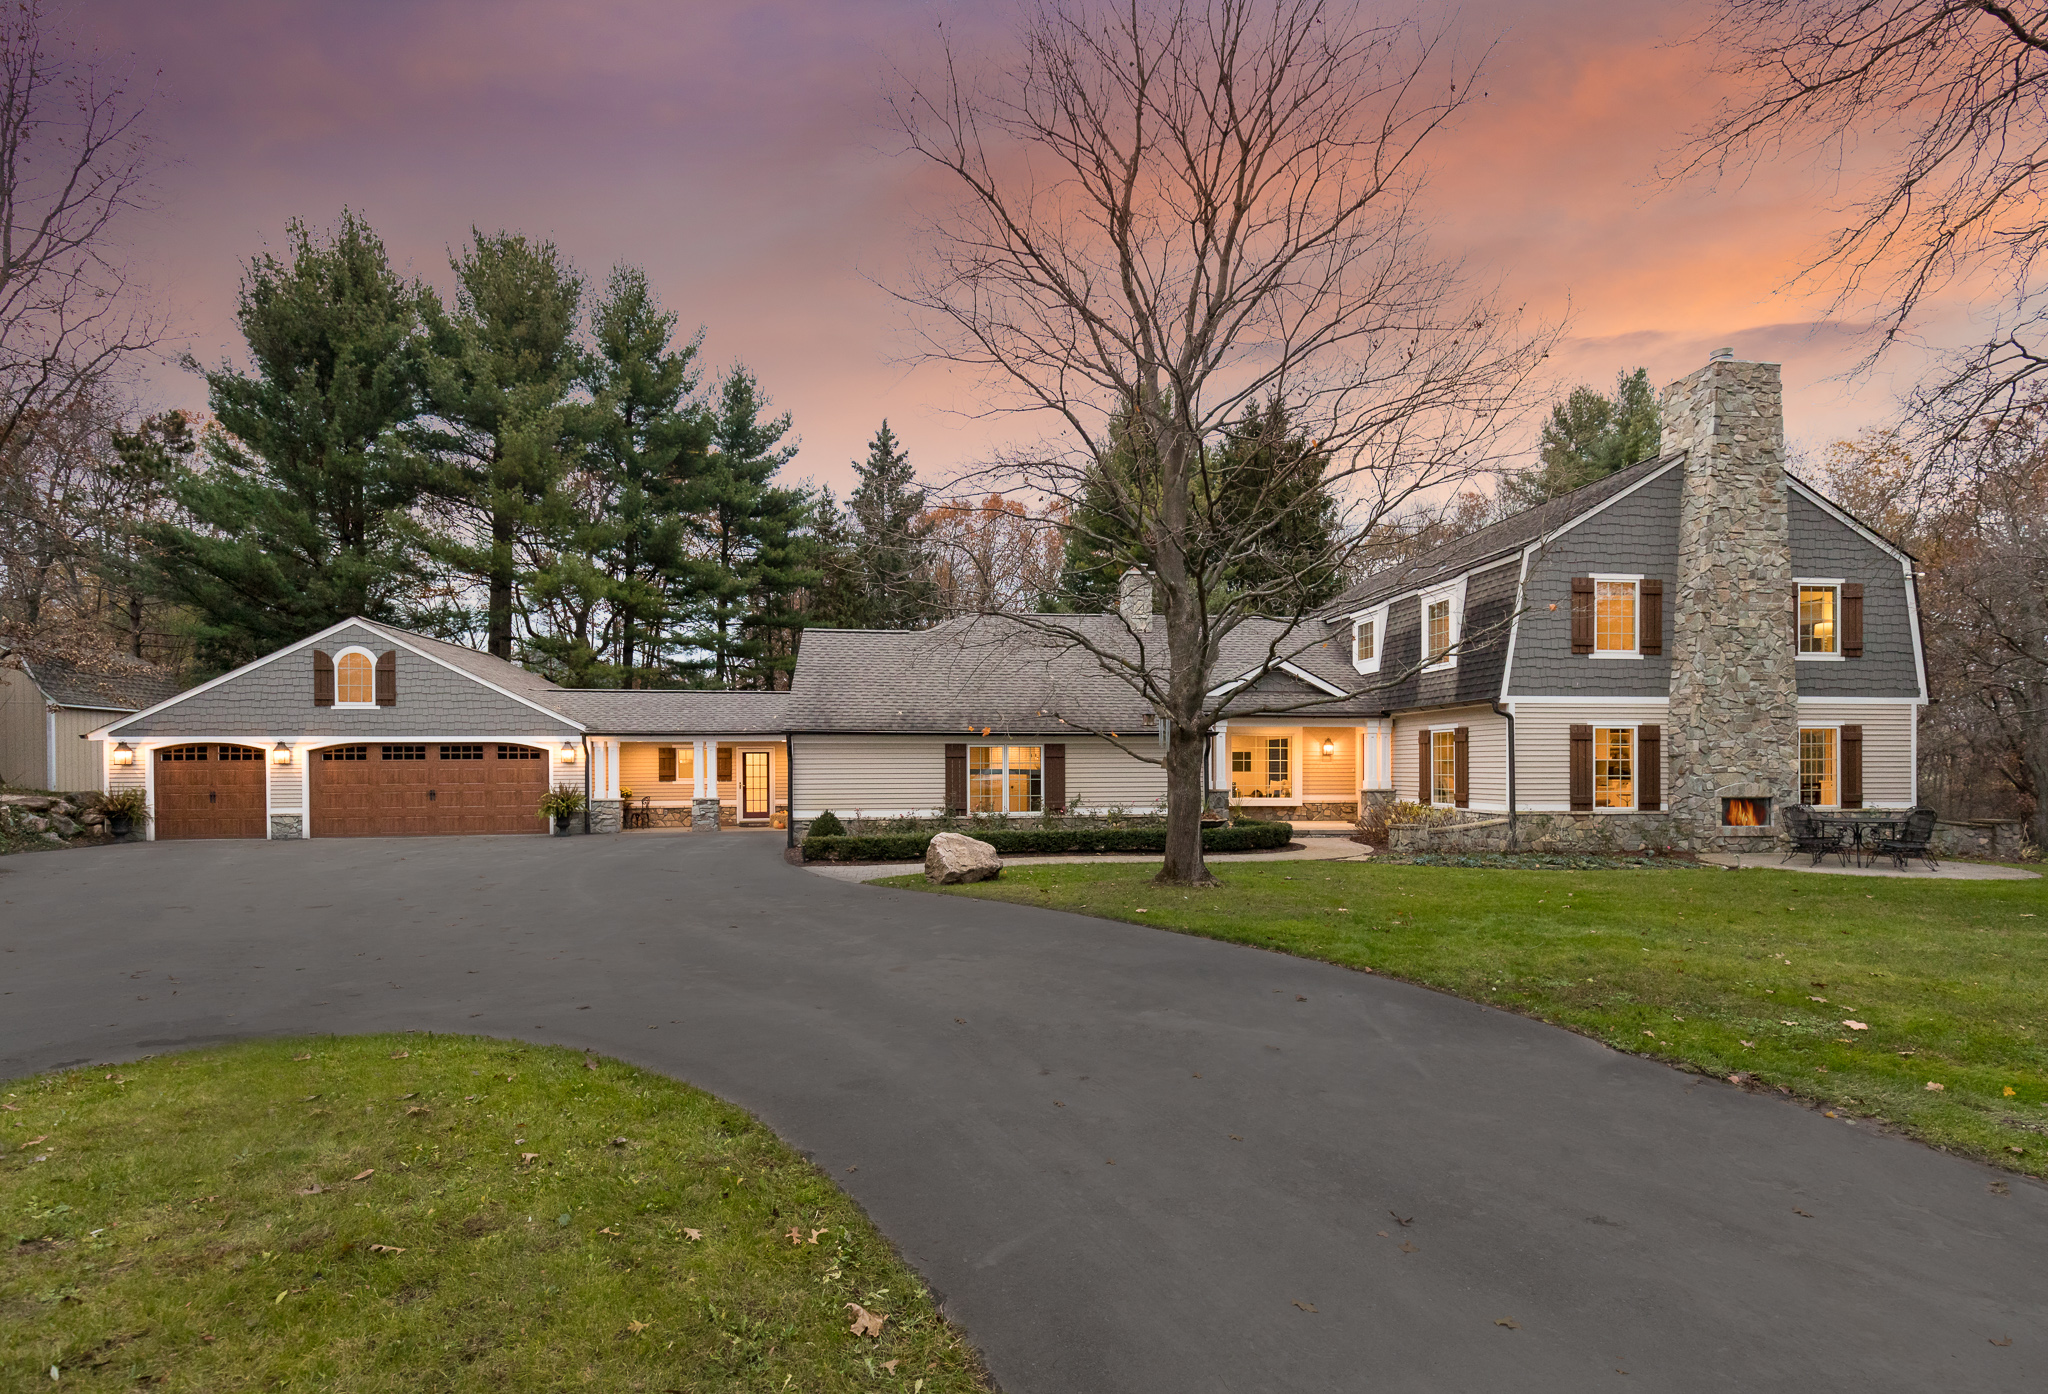 oakland township real estate photography